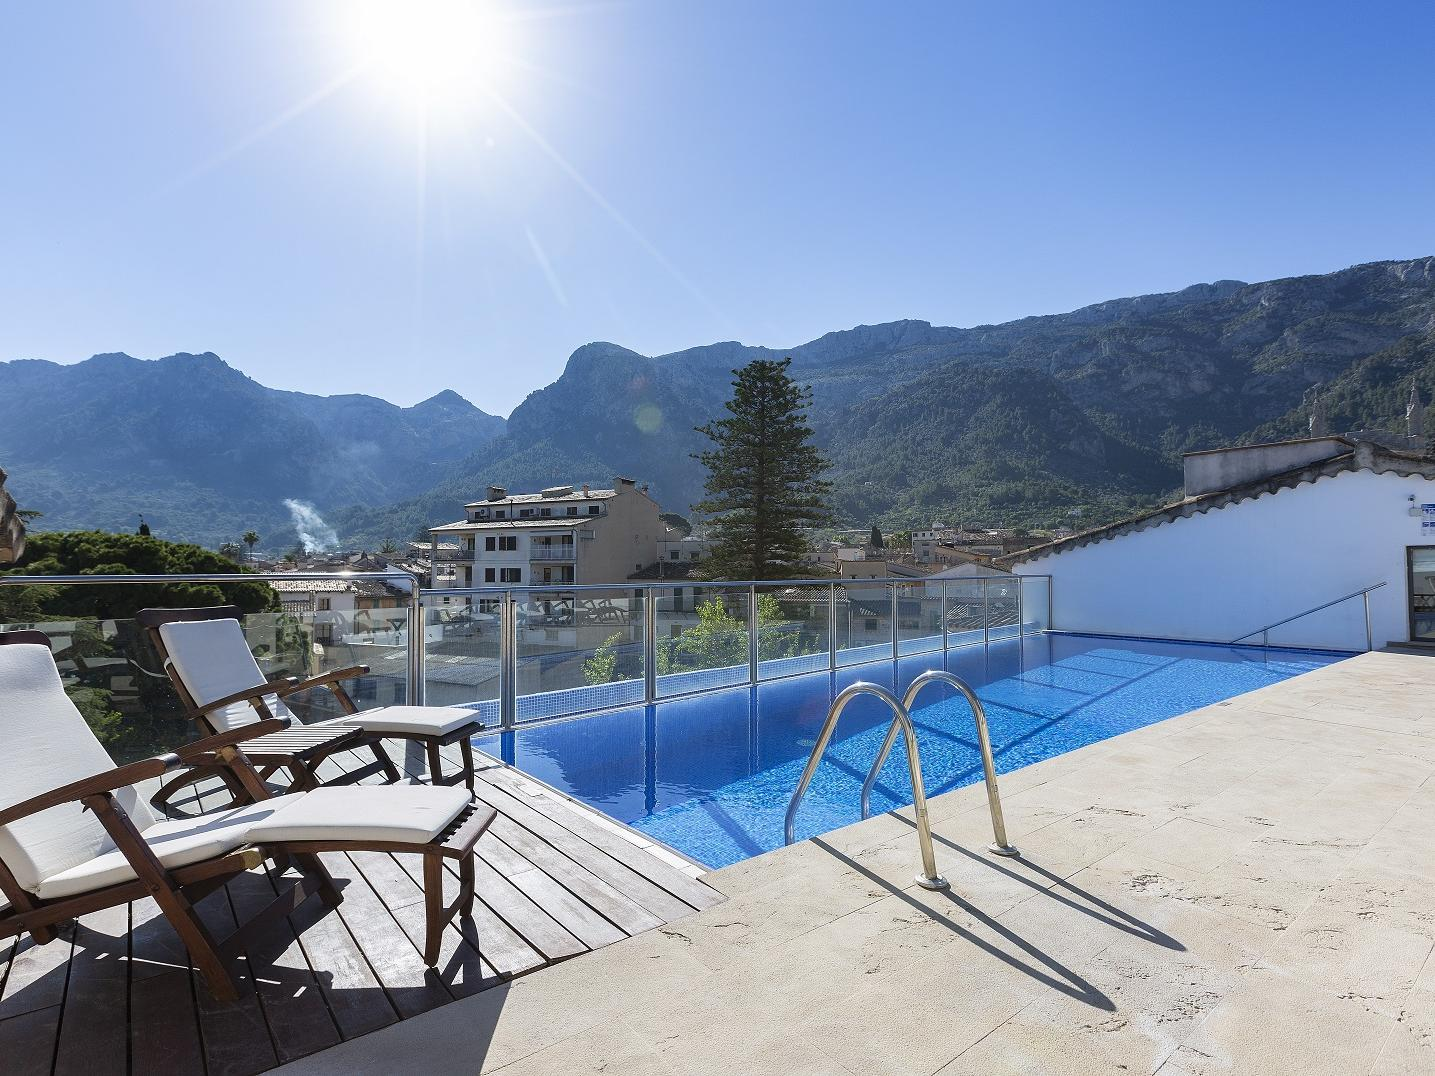 Rooftop pool at Gran Hotel Sóller in Sóller, Majorca